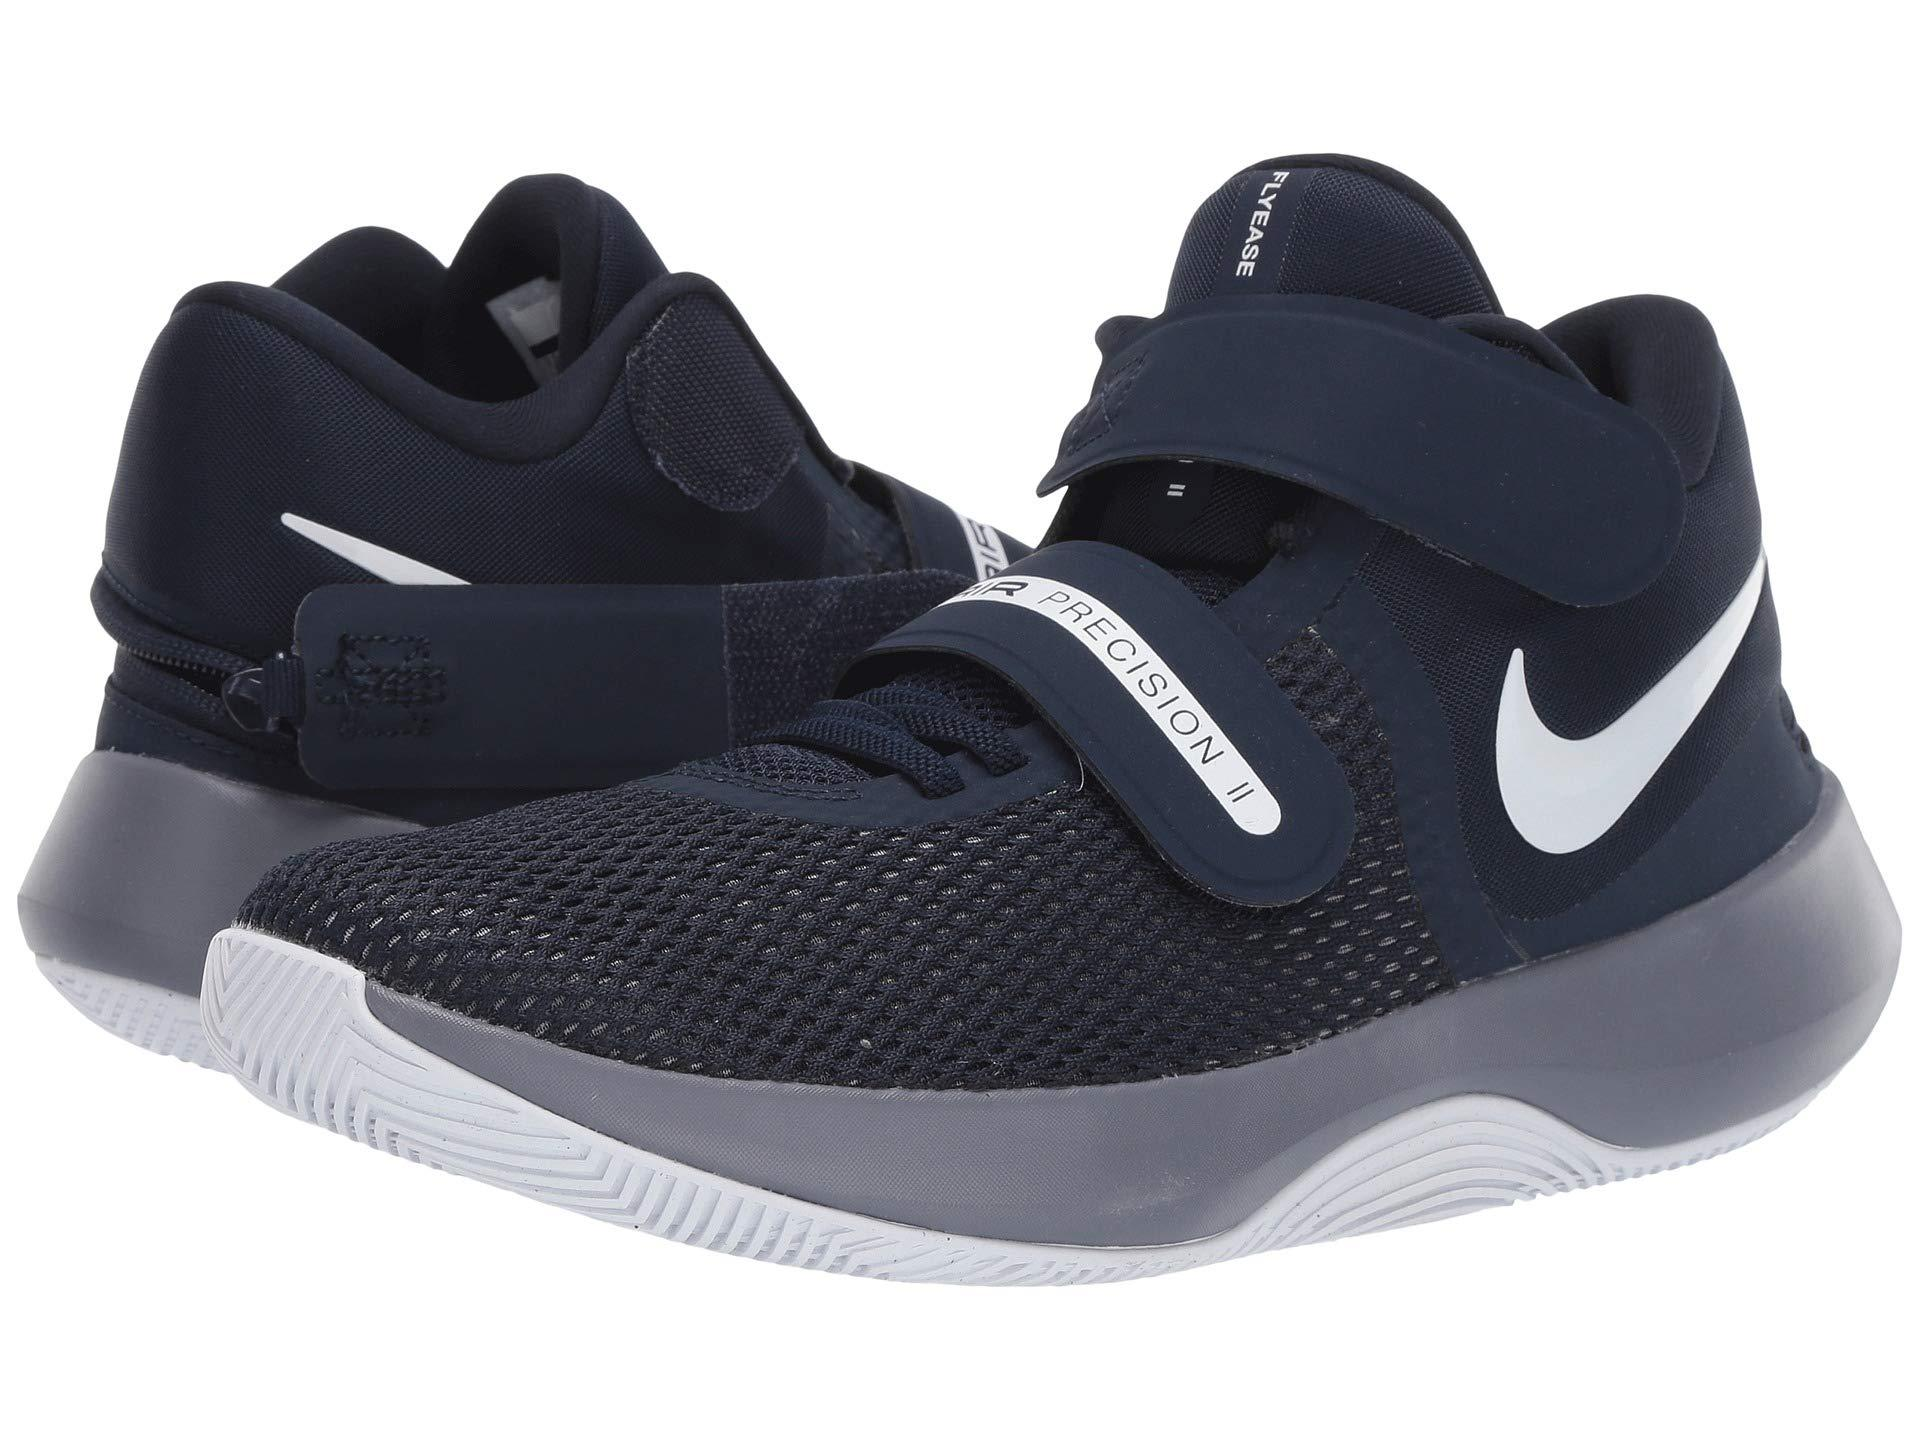 54c836811f3c Nike. Air Precision Ii Flyease (cool Grey black white photo Blue) Men s  Basketball Shoes